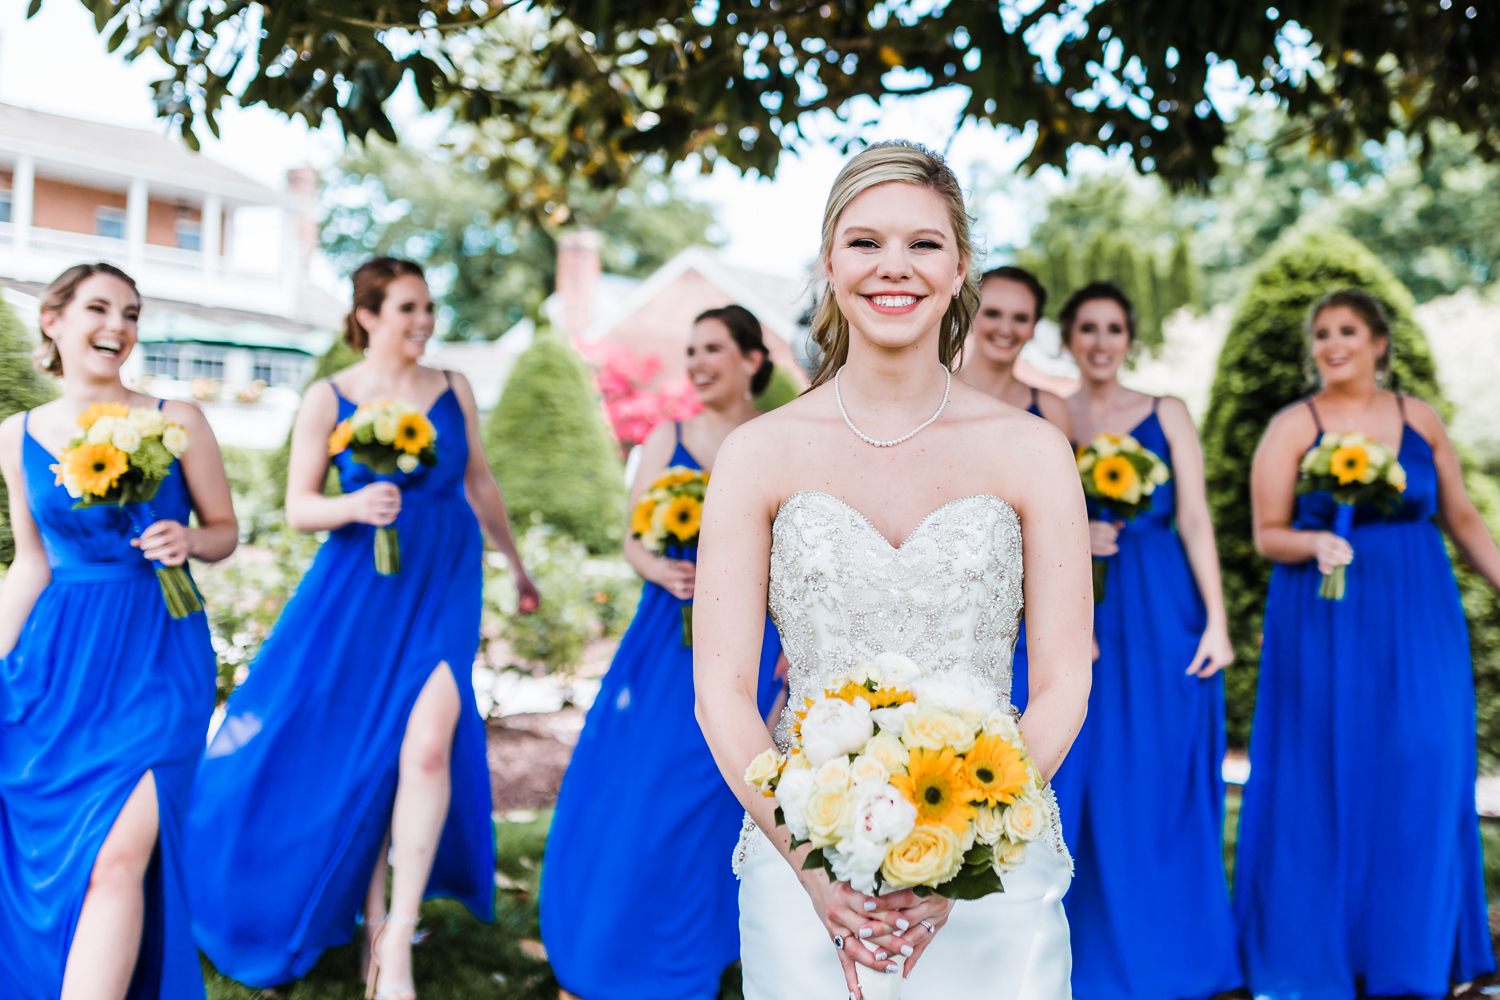 bride smiling with bridesmaids in back - beautiful classy venue in Maryland